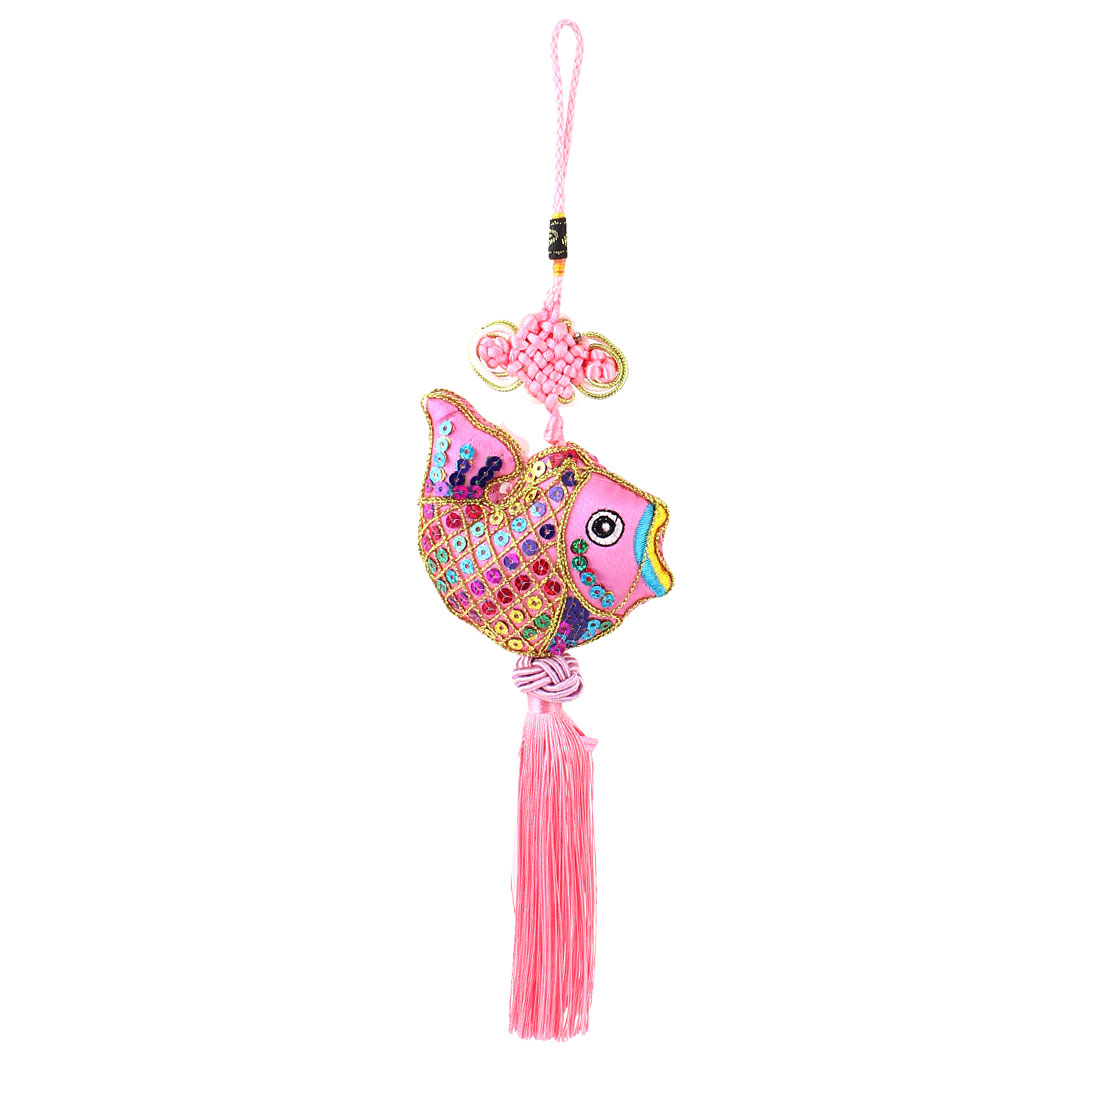 Home Decoration Tassel Decor Chinese Knot Hanging Ornament Pink